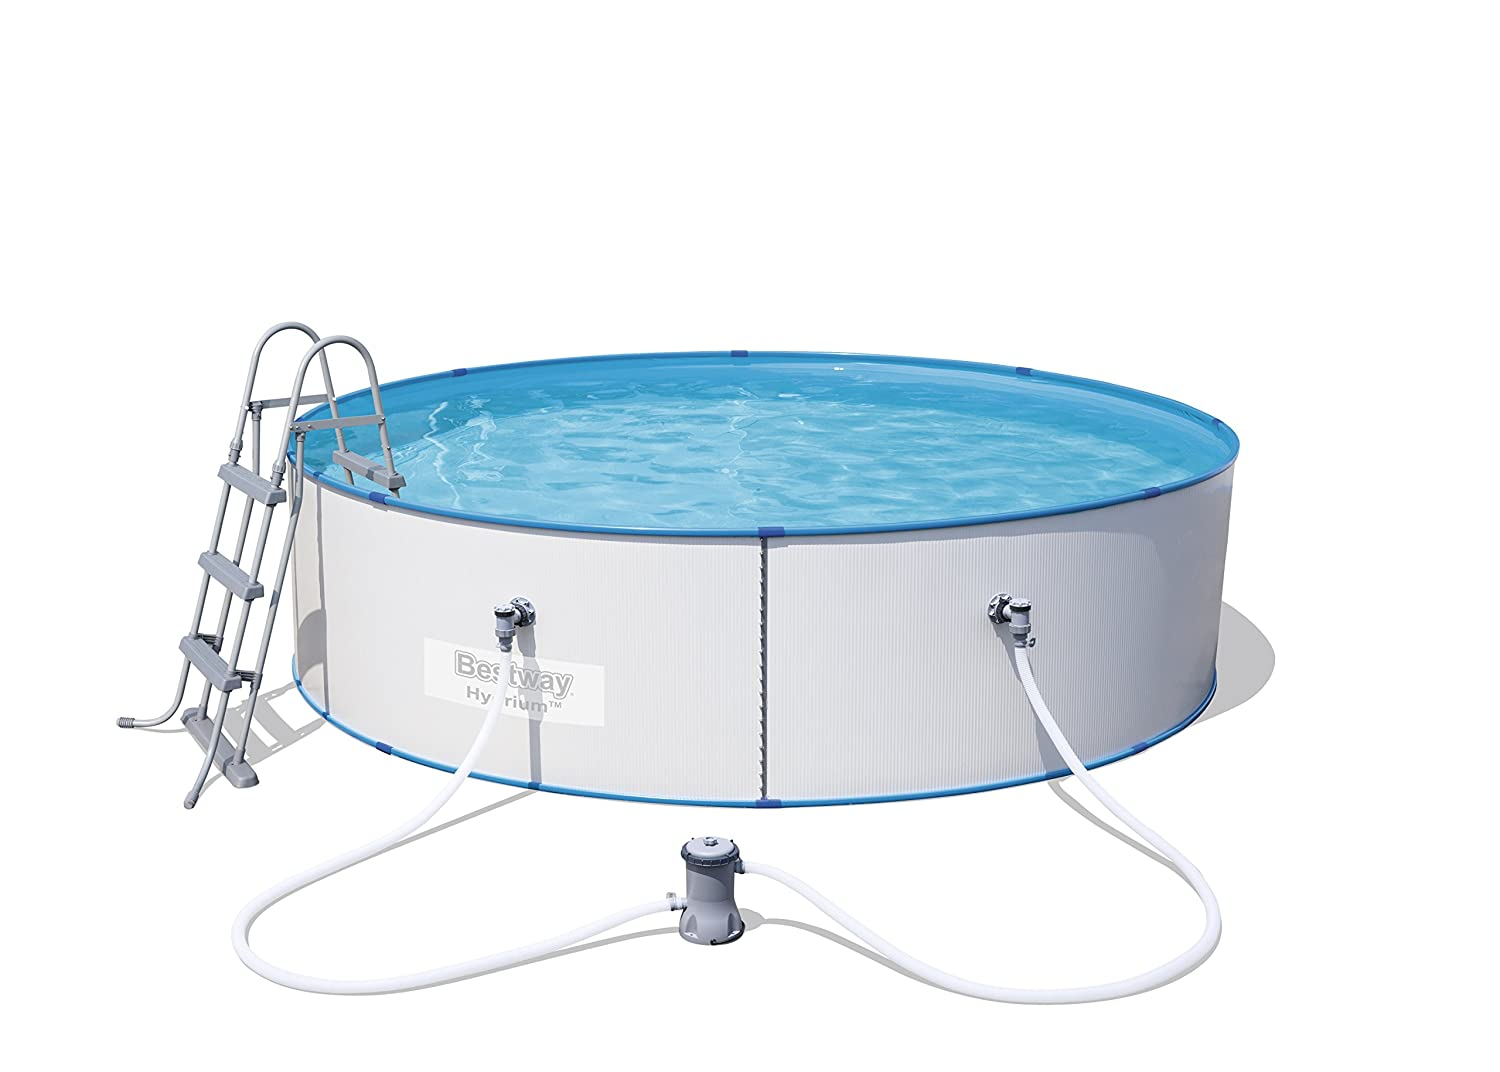 Bestway Hydrium Splasher Steel Wall Pool Set - 12 feet 56377-BGSX16EX04